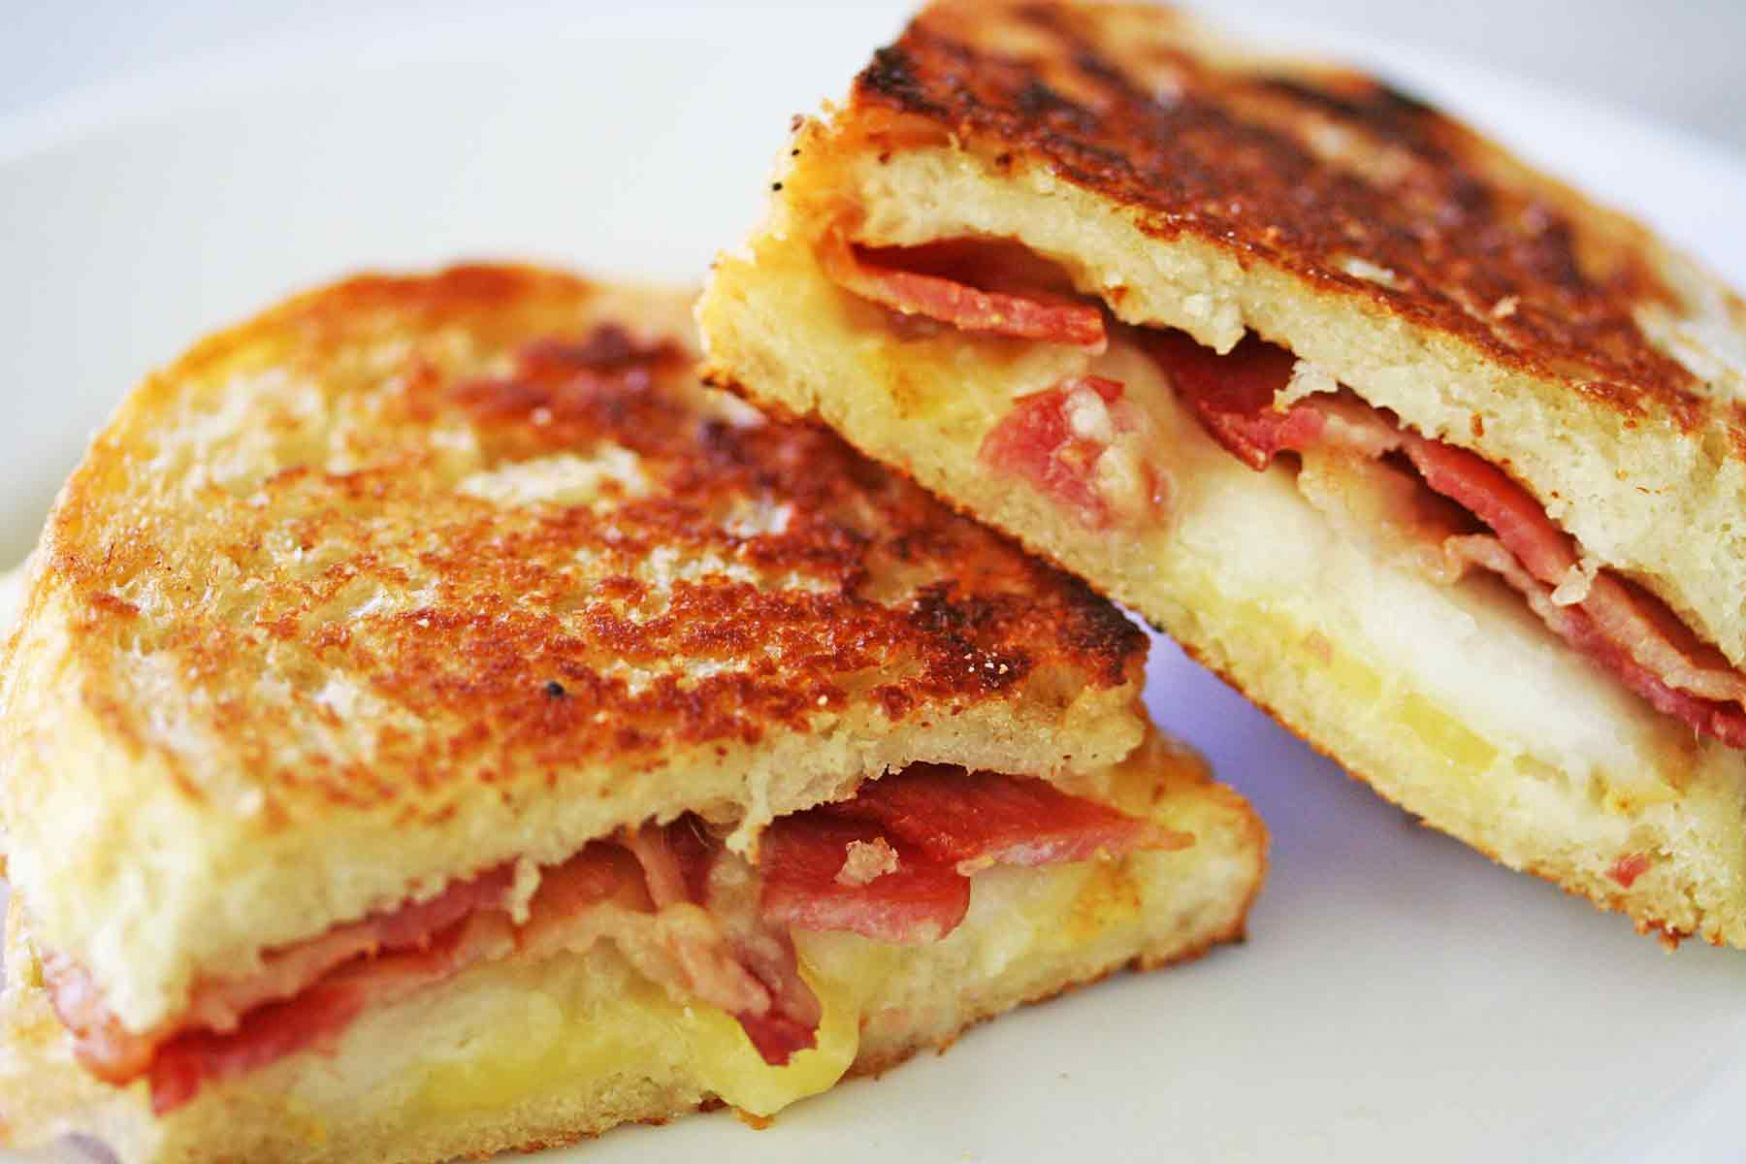 Grilled Cheese Sandwich with Bacon and Pear - Sandwich Recipes Grilled Cheese